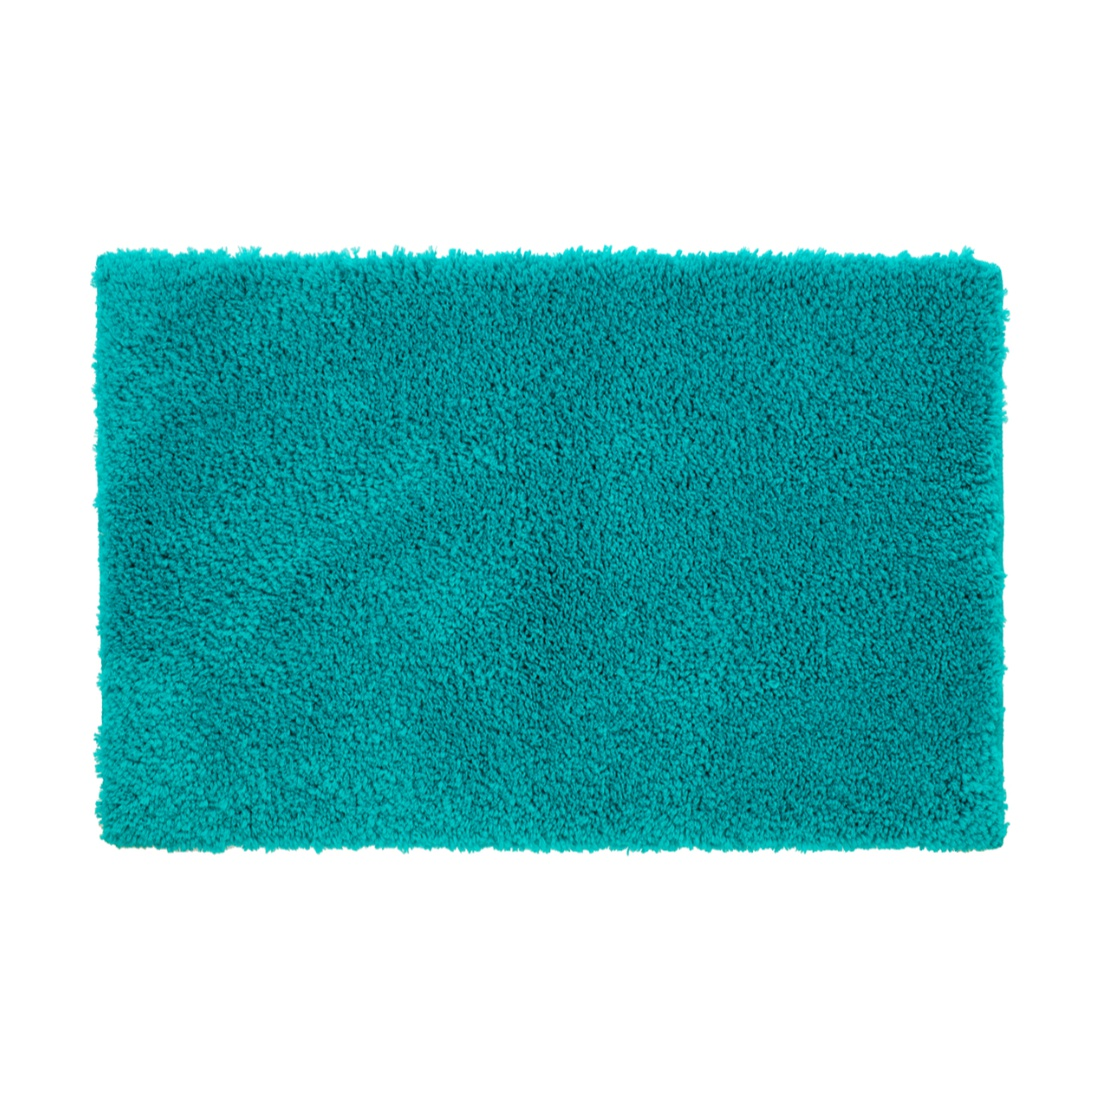 Nora Bath Mat 100% Micro Fiber 2000 Gsm Turquoise Micro Fibre Bath Mats in Turquoise Colour by Living Essence